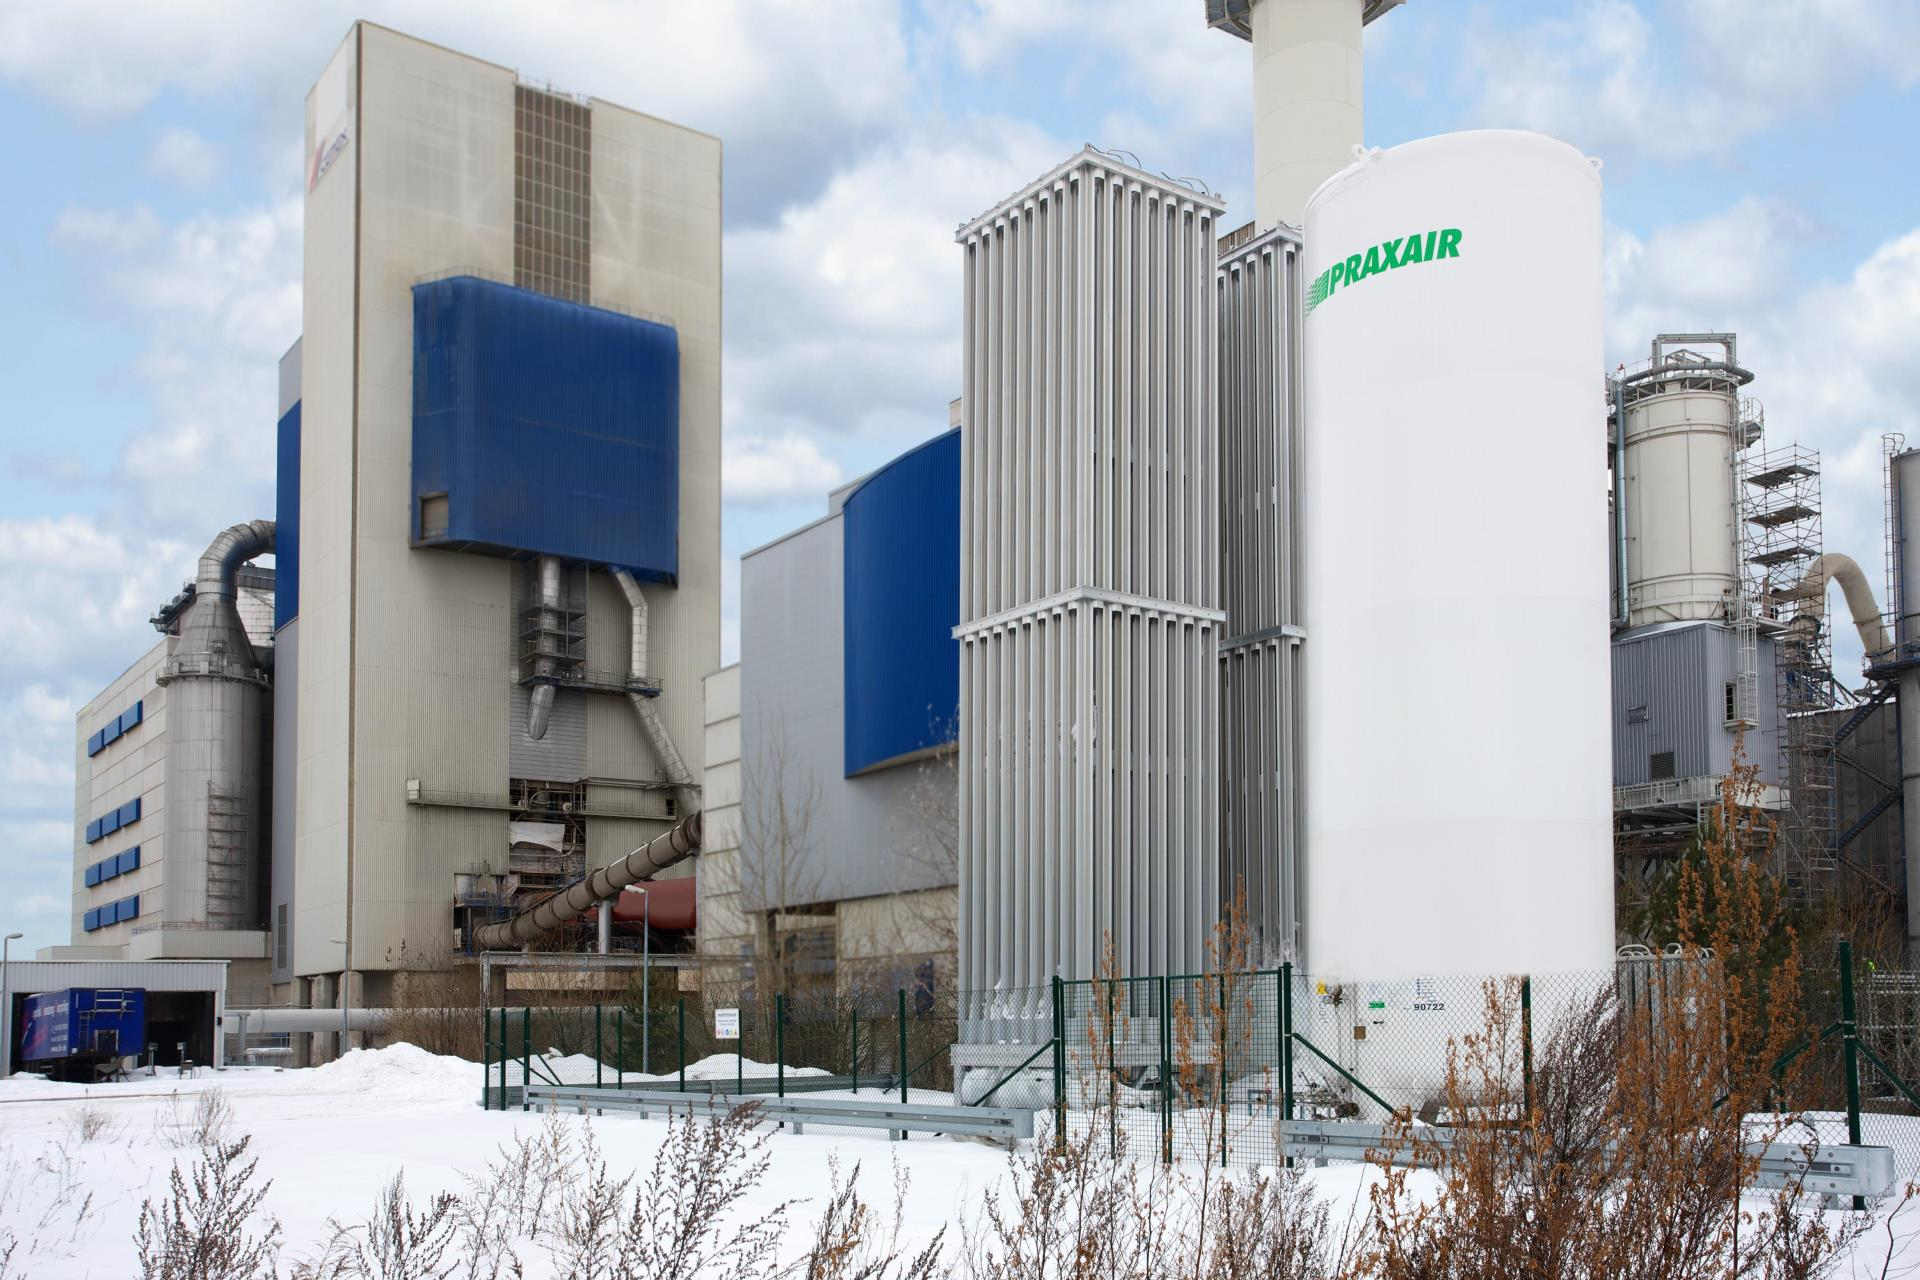 Corporate Heritage Year 2004 - Praxair acquires Air Liquide's Germany business